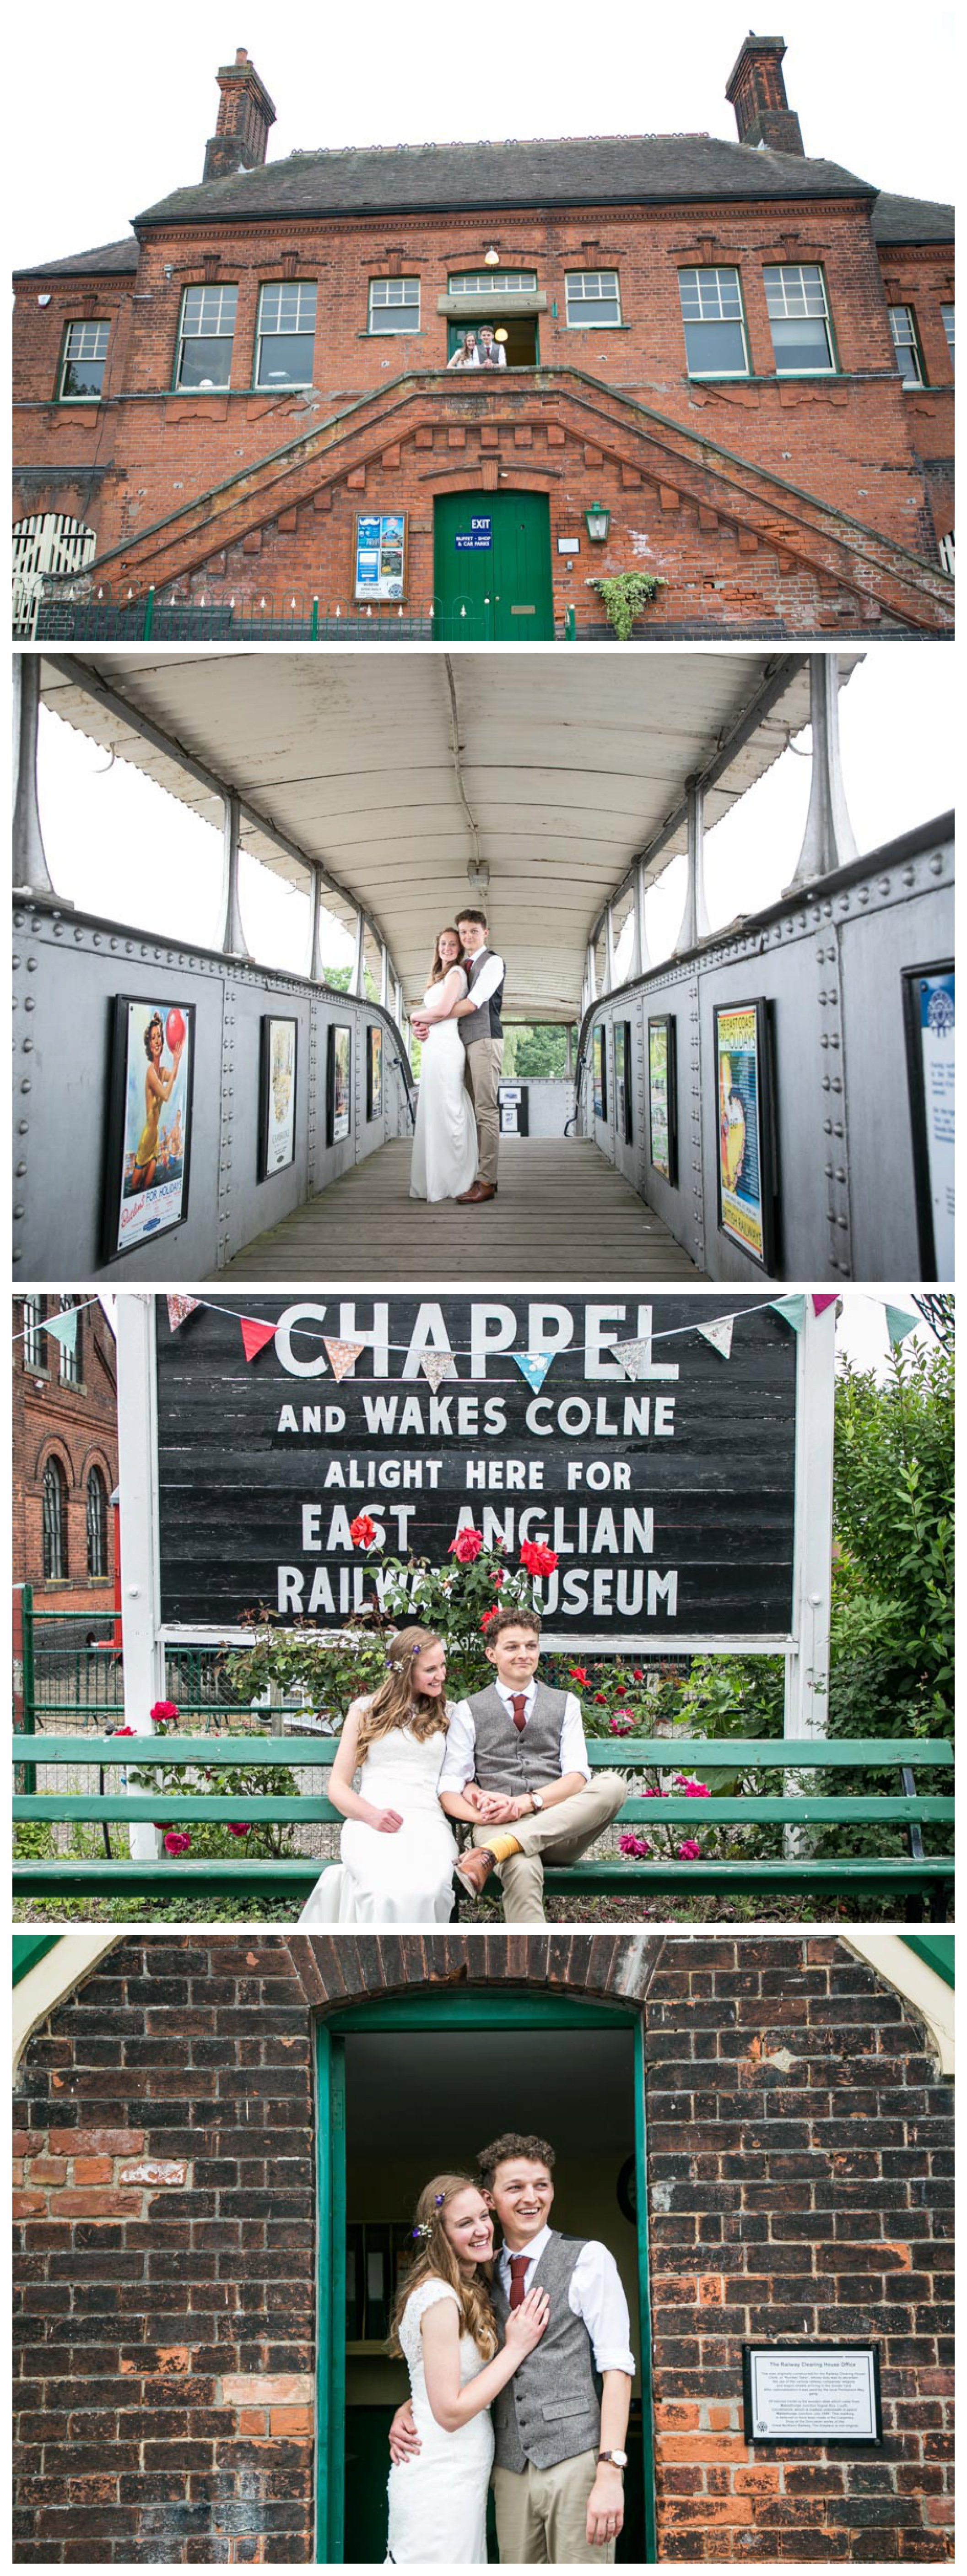 bride and groom wedding portraits at railway museum, on bench, in doorway and on bridge